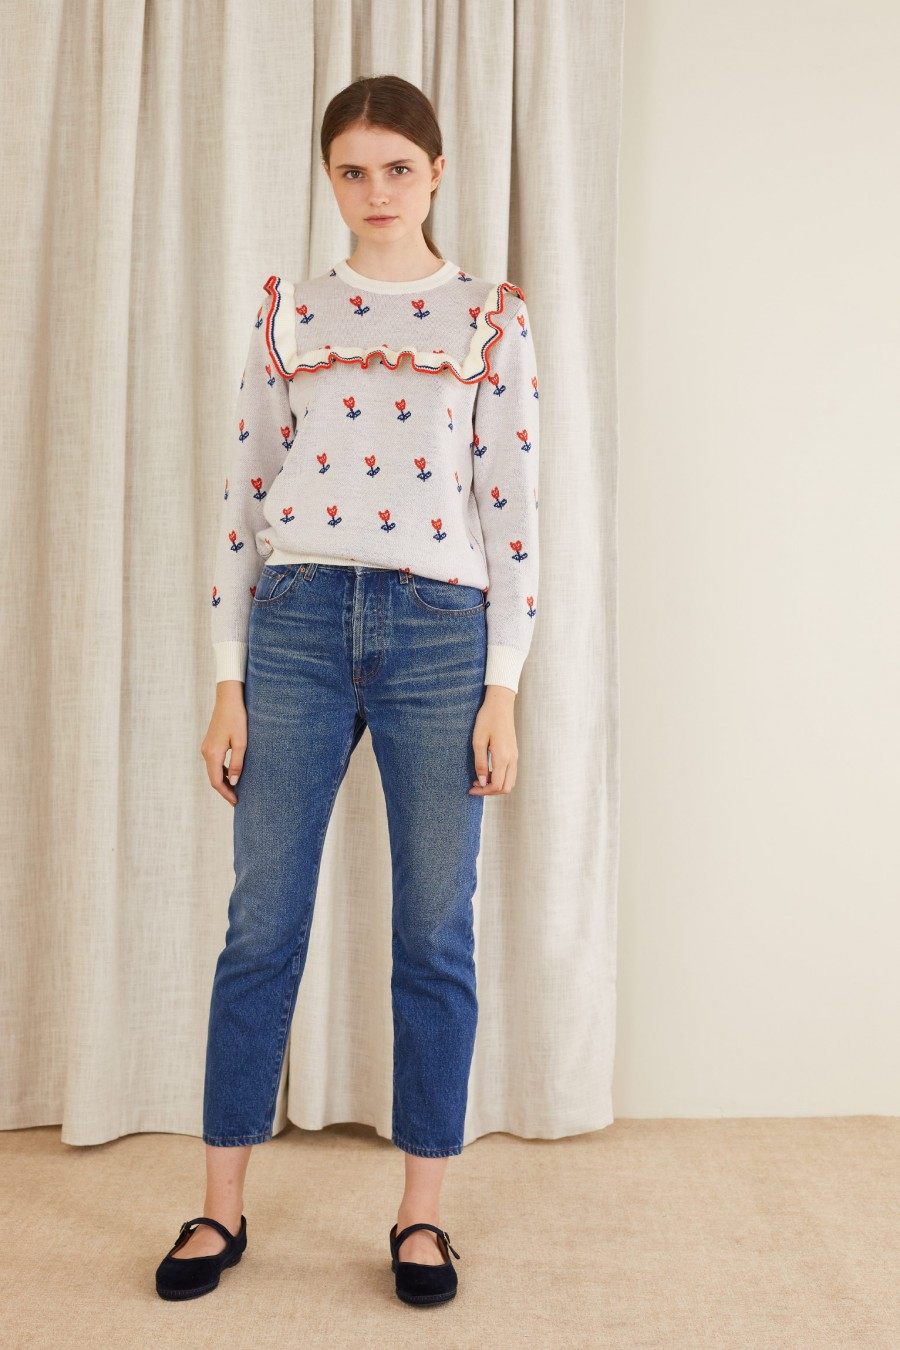 lovely jumper with flowers